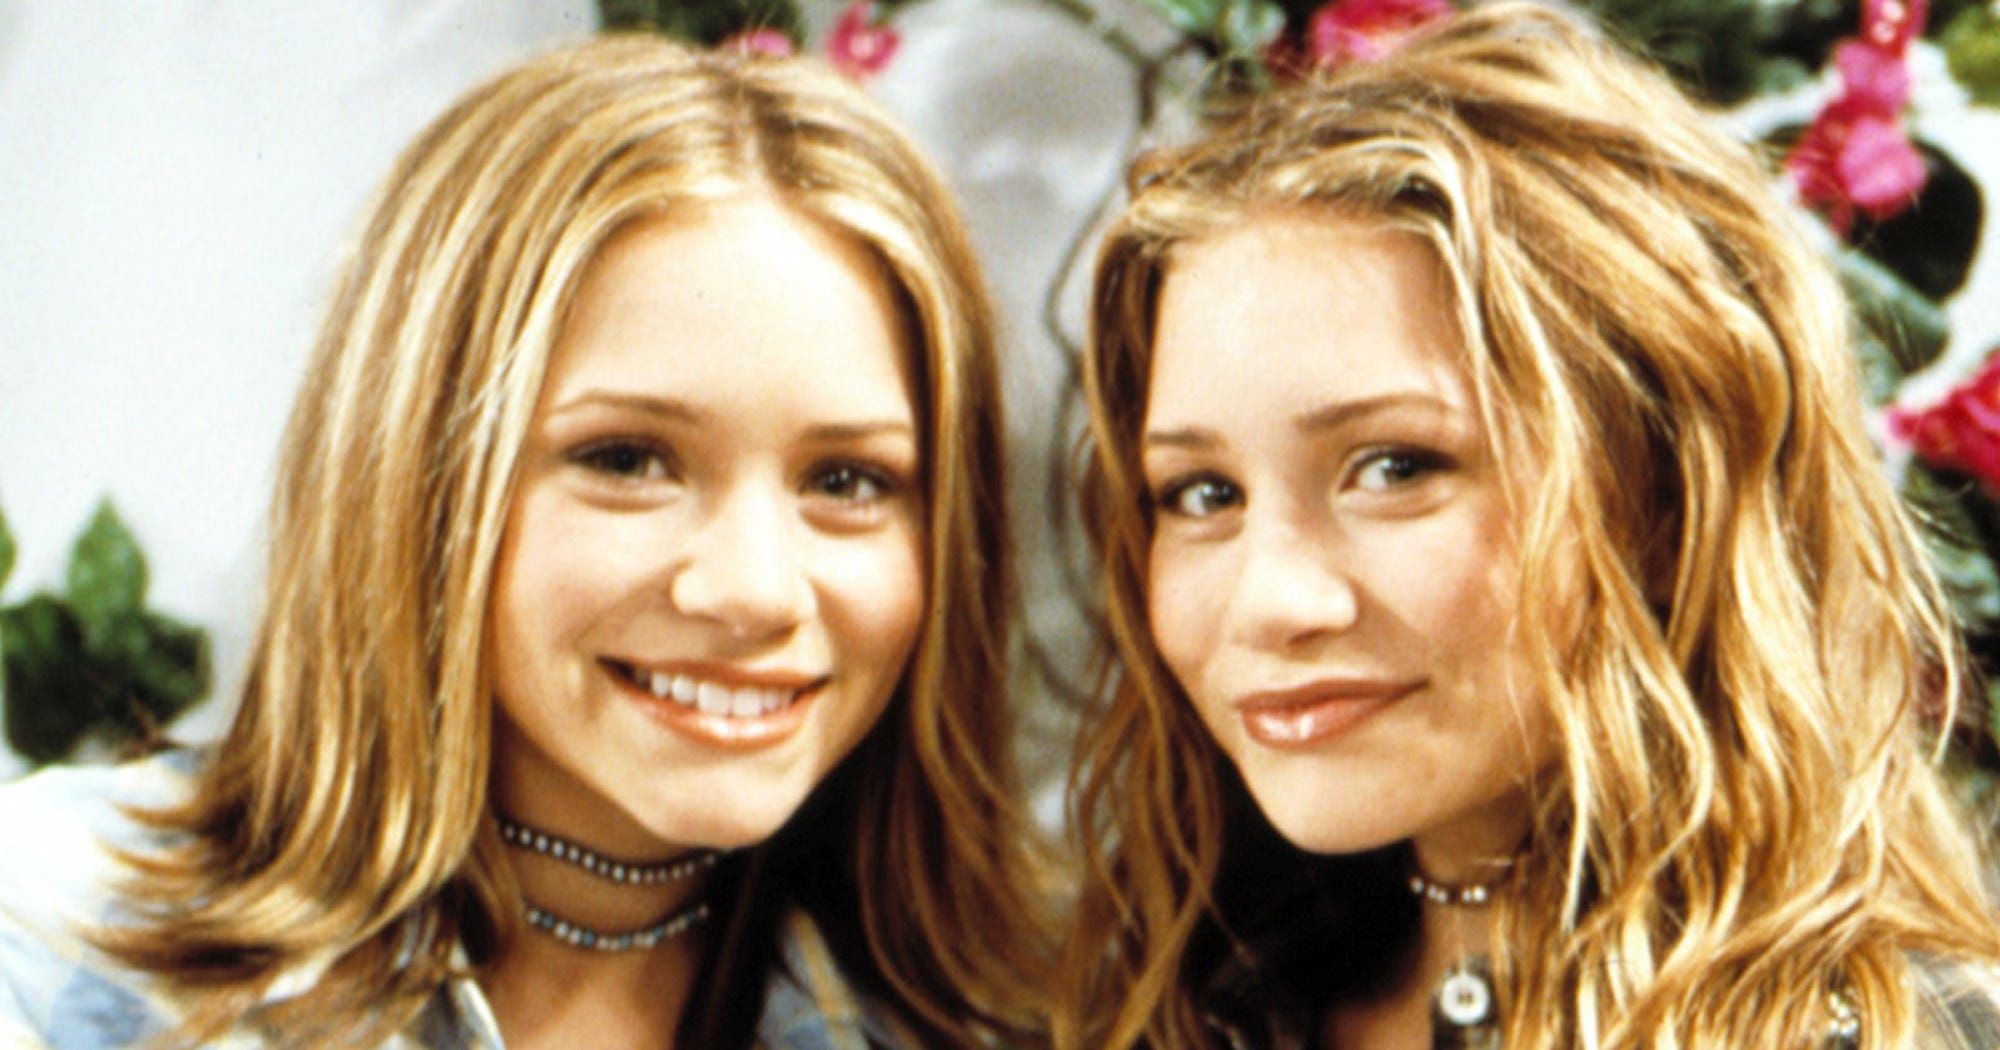 Mary Kate And Ashley Olsen So Little Time Tv Show-6340